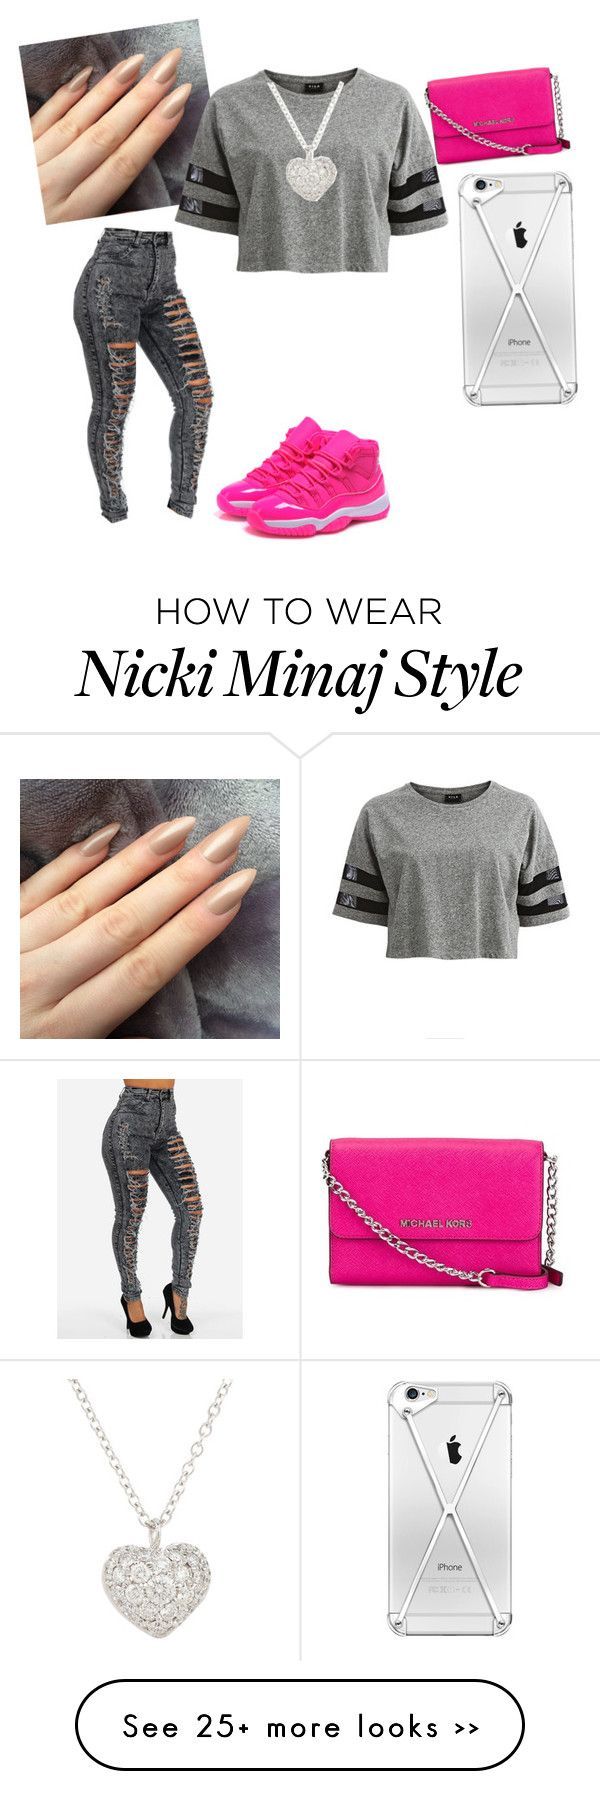 """No Love-August Alsina ft. Nicki Minaj"" by jullianna411 on Polyvore"